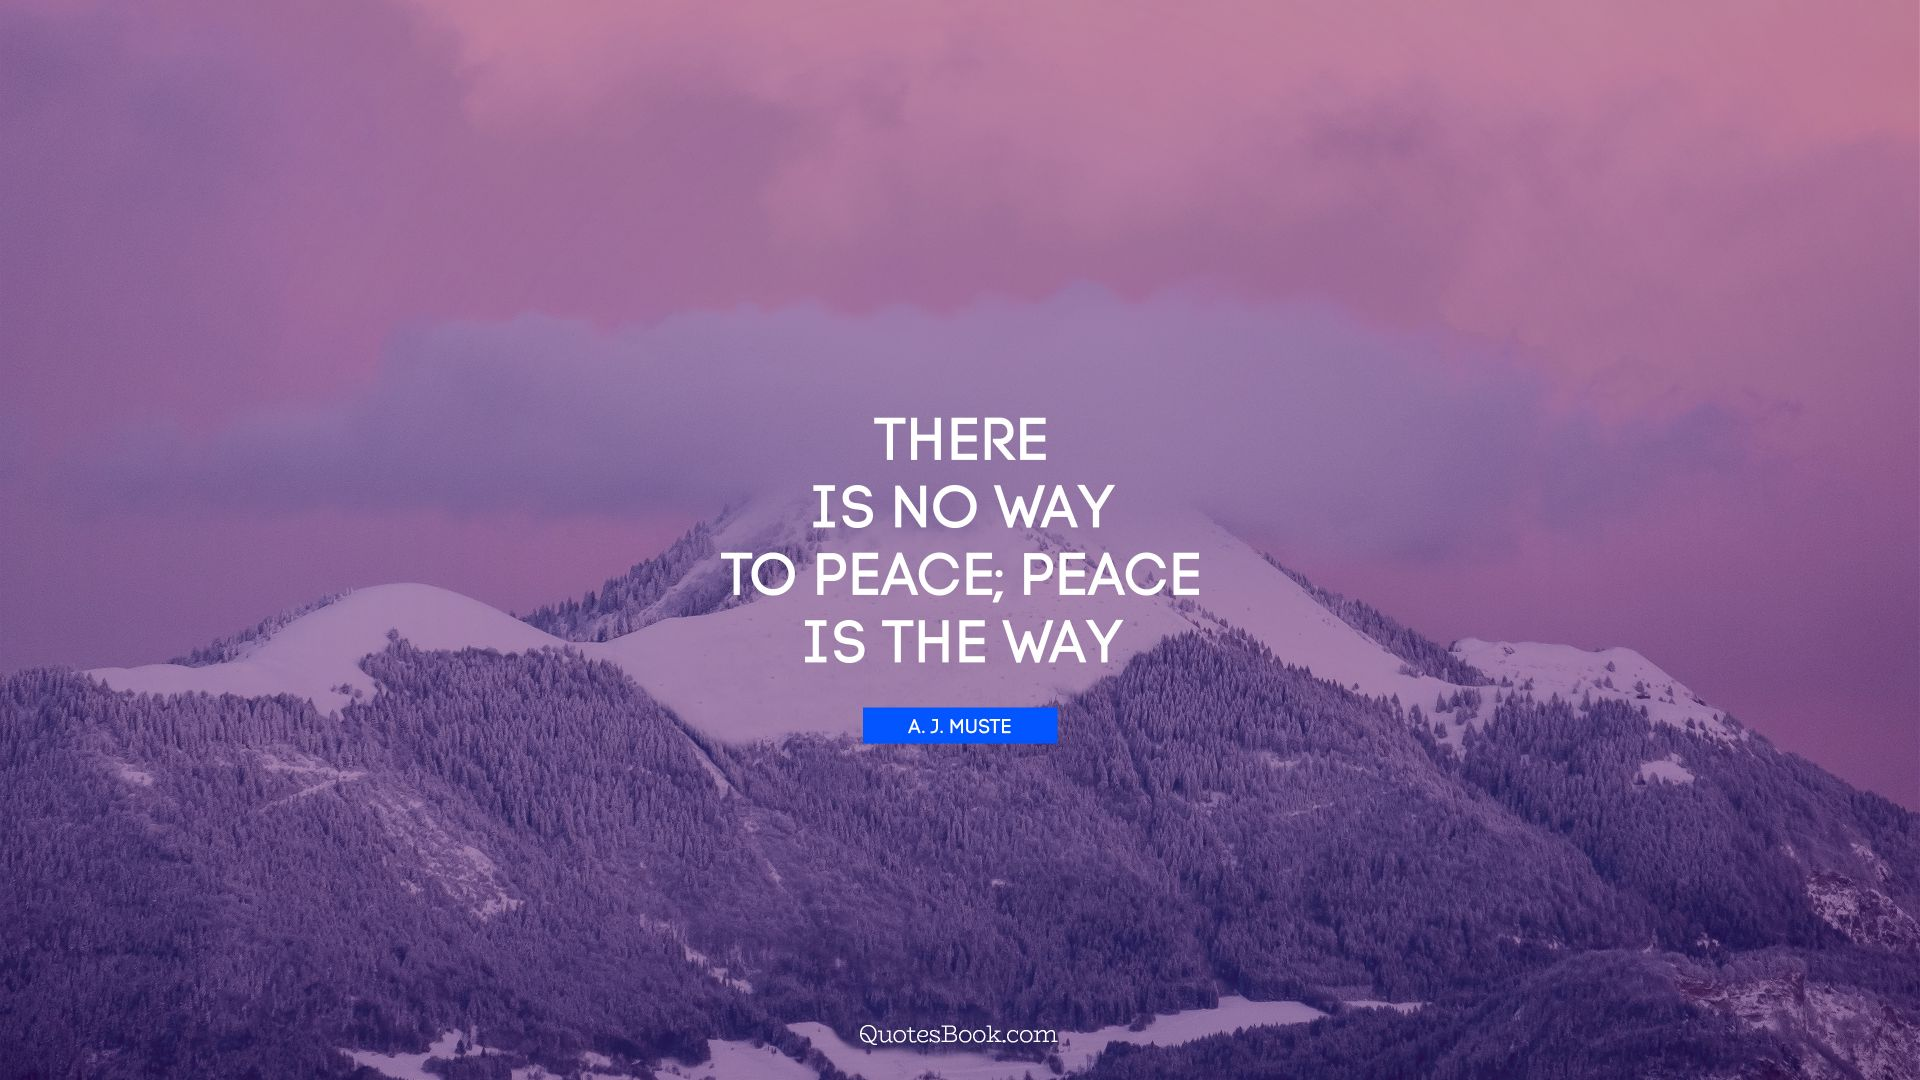 There is no way to peace; peace is the way. - Quote by A. J. Muste